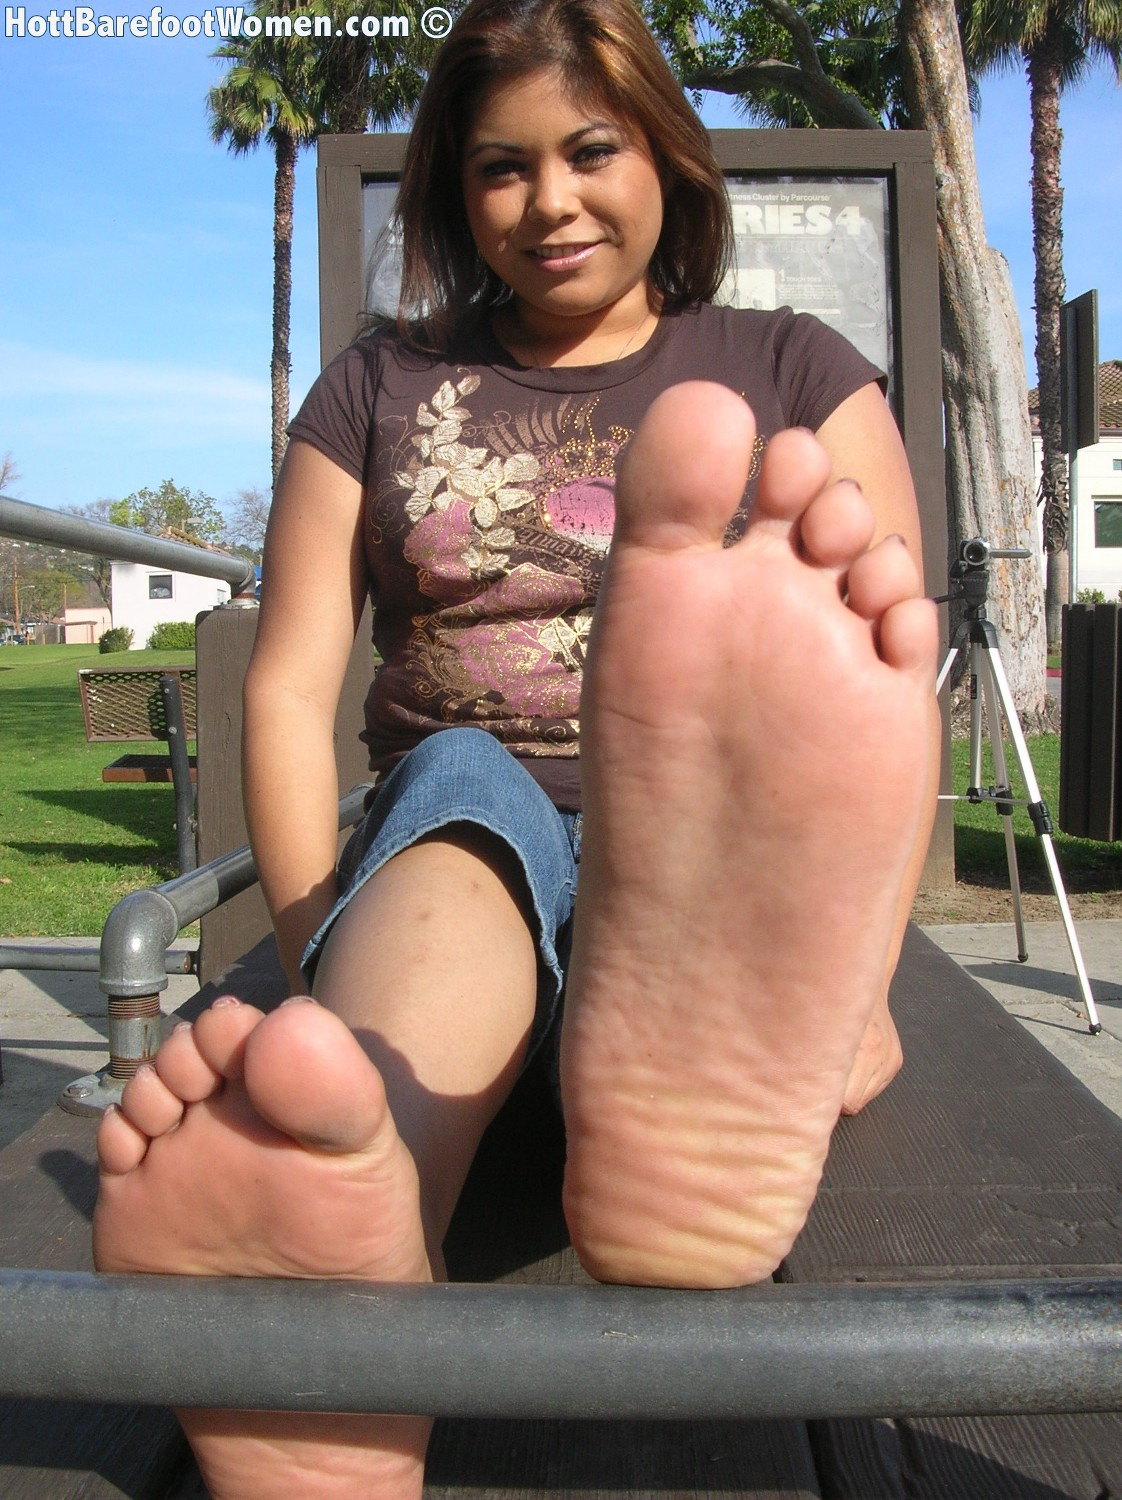 Trinidad feet fetish